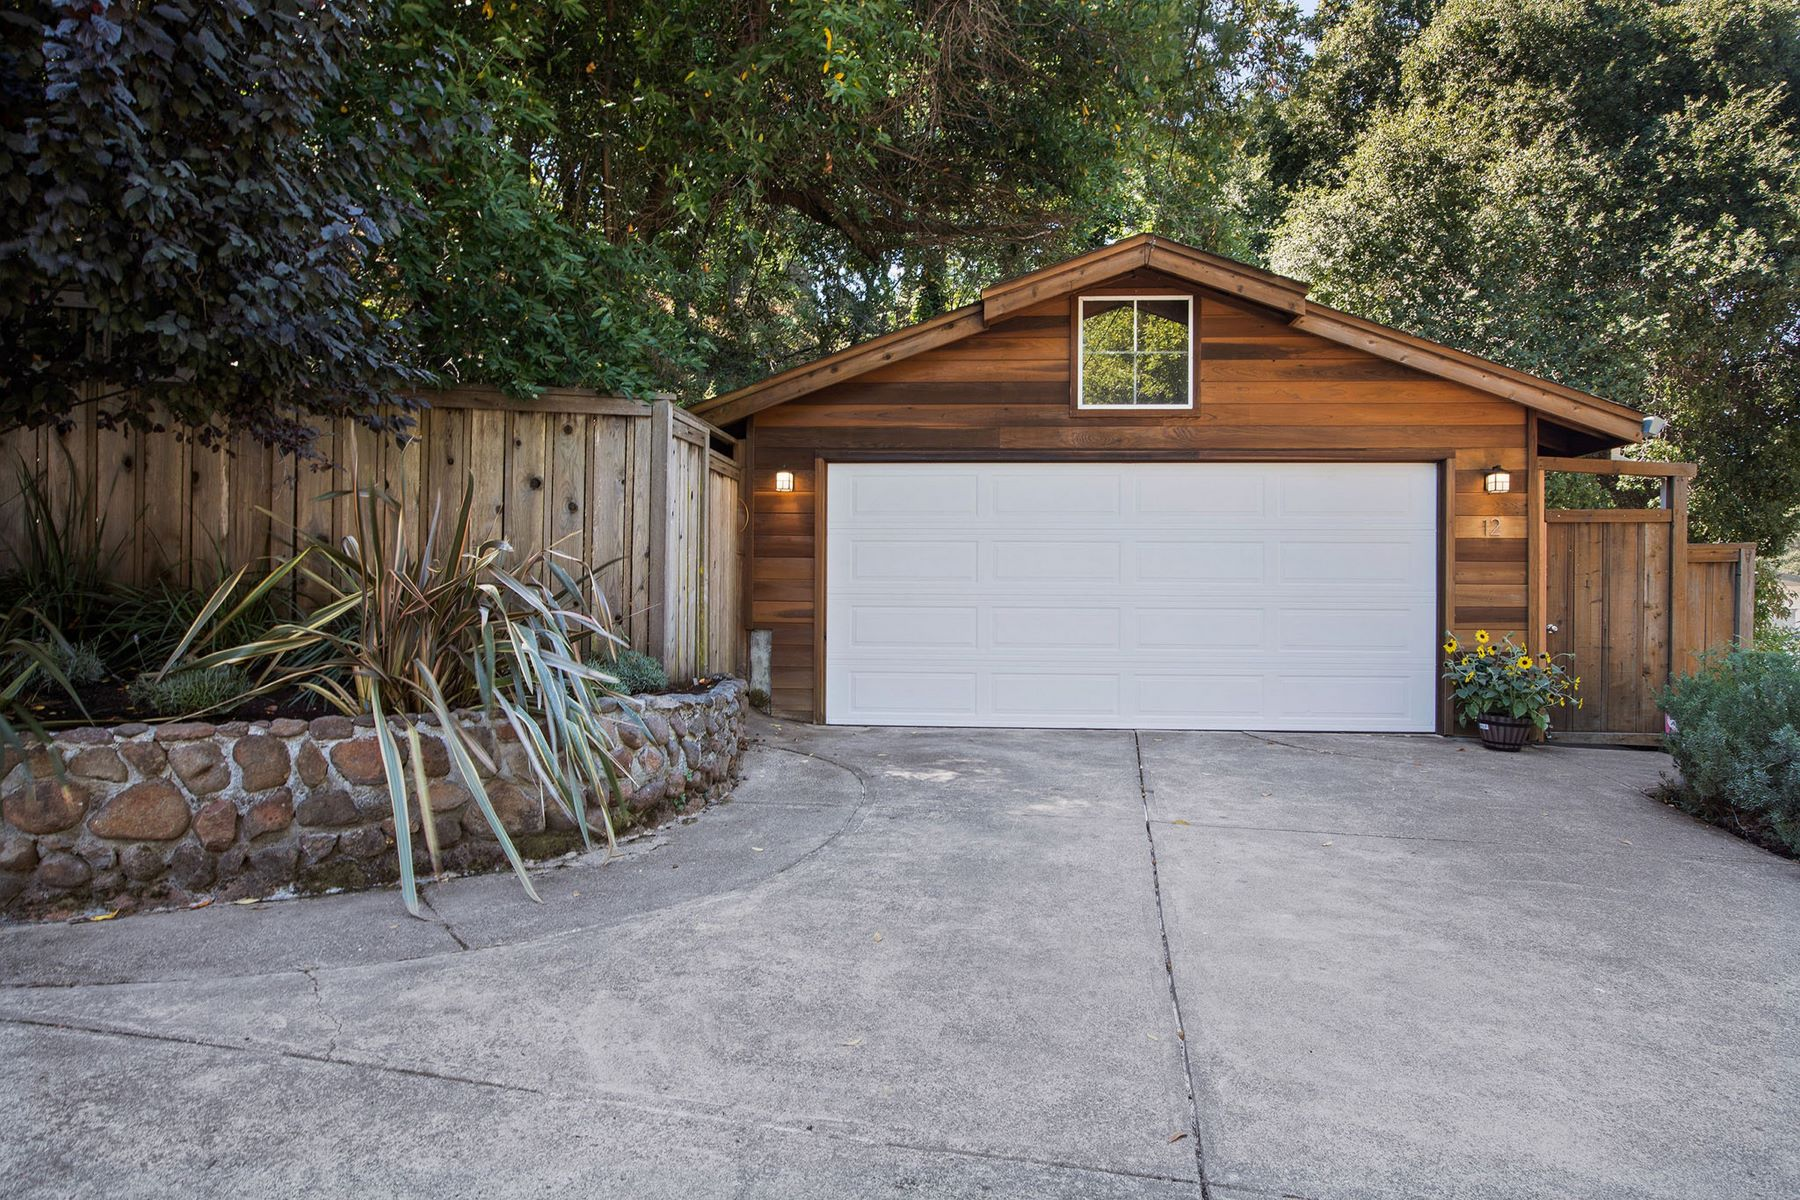 Single Family Homes for Sale at Charming San Anselmo Cottage in Garden Setting 12 Berkeley Avenue San Anselmo, California 94960 United States